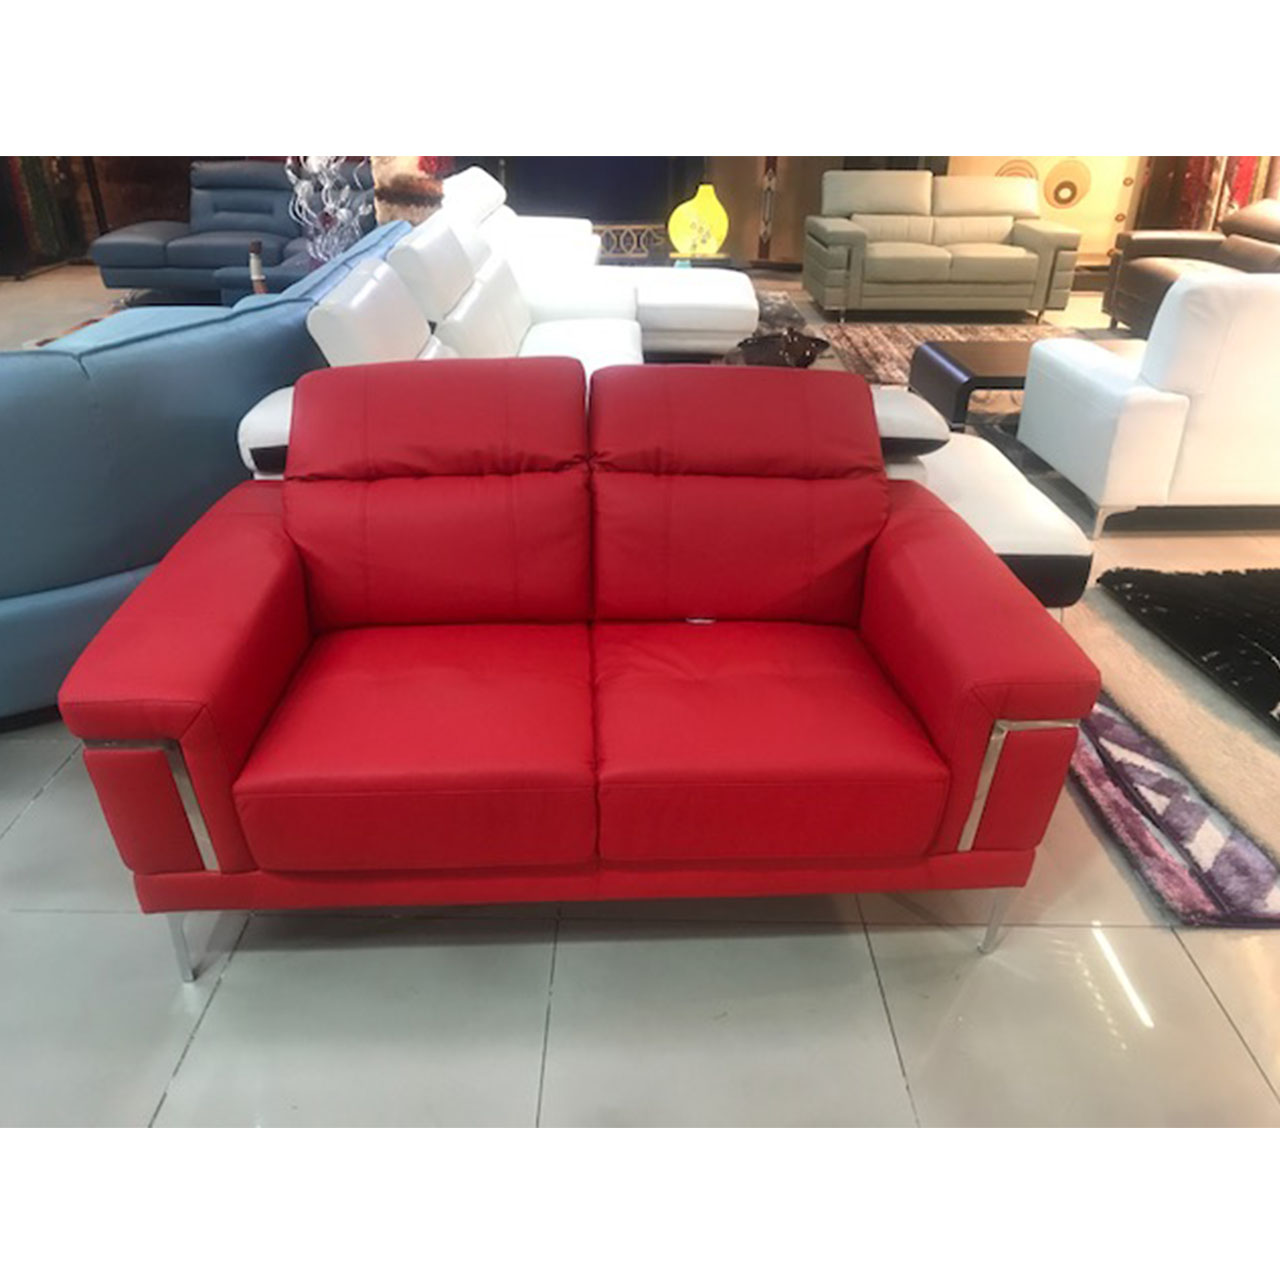 decor-and-design-lounge-suites_0001s_0001_D2 Trend red